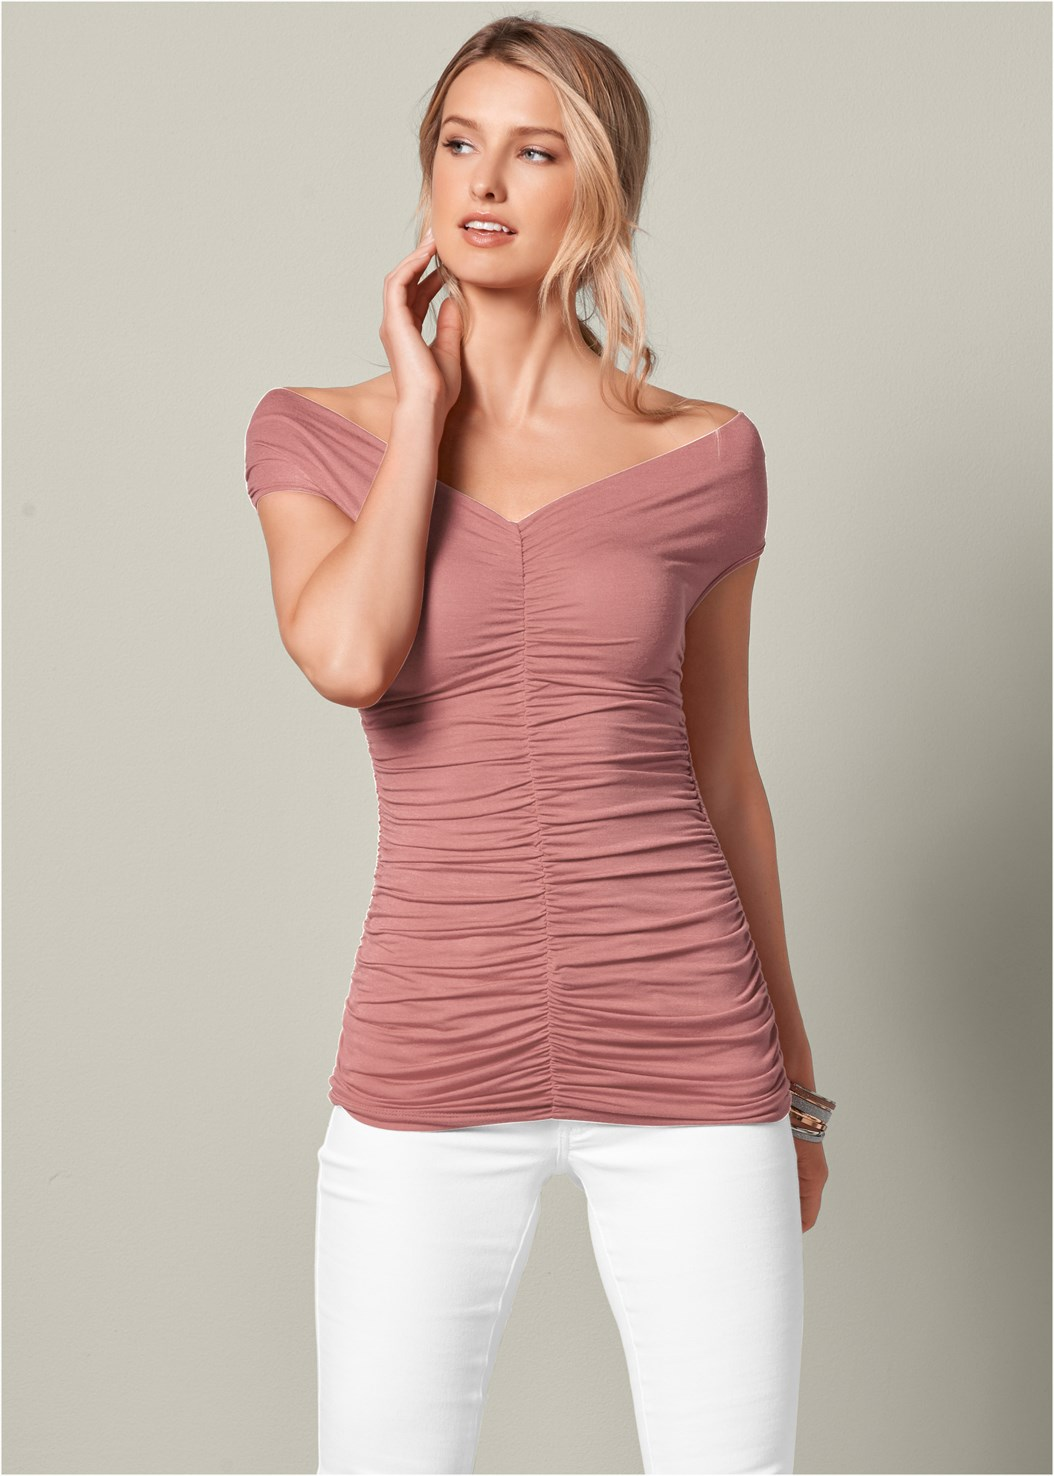 Ruched Detail Top,Mid Rise Color Skinny Jeans